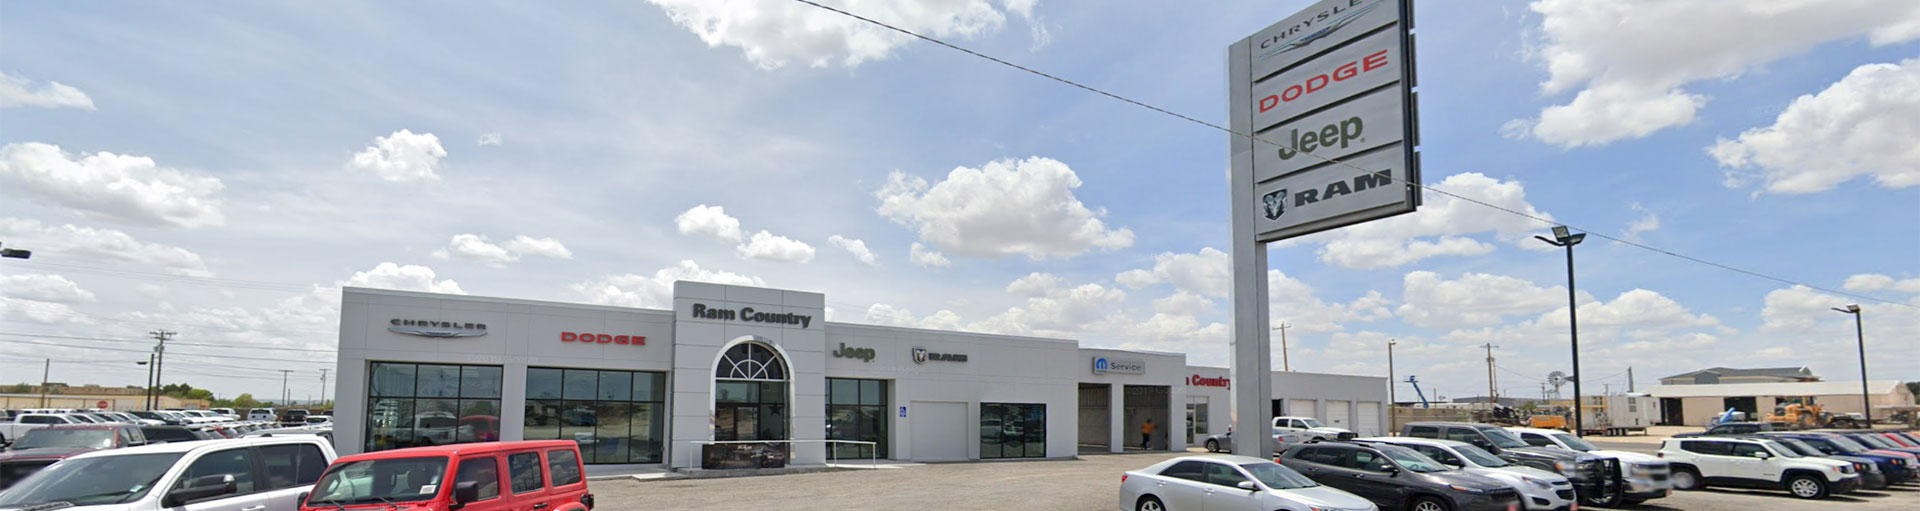 Ram Country Fort Stockton Service and Parts Special Coupons